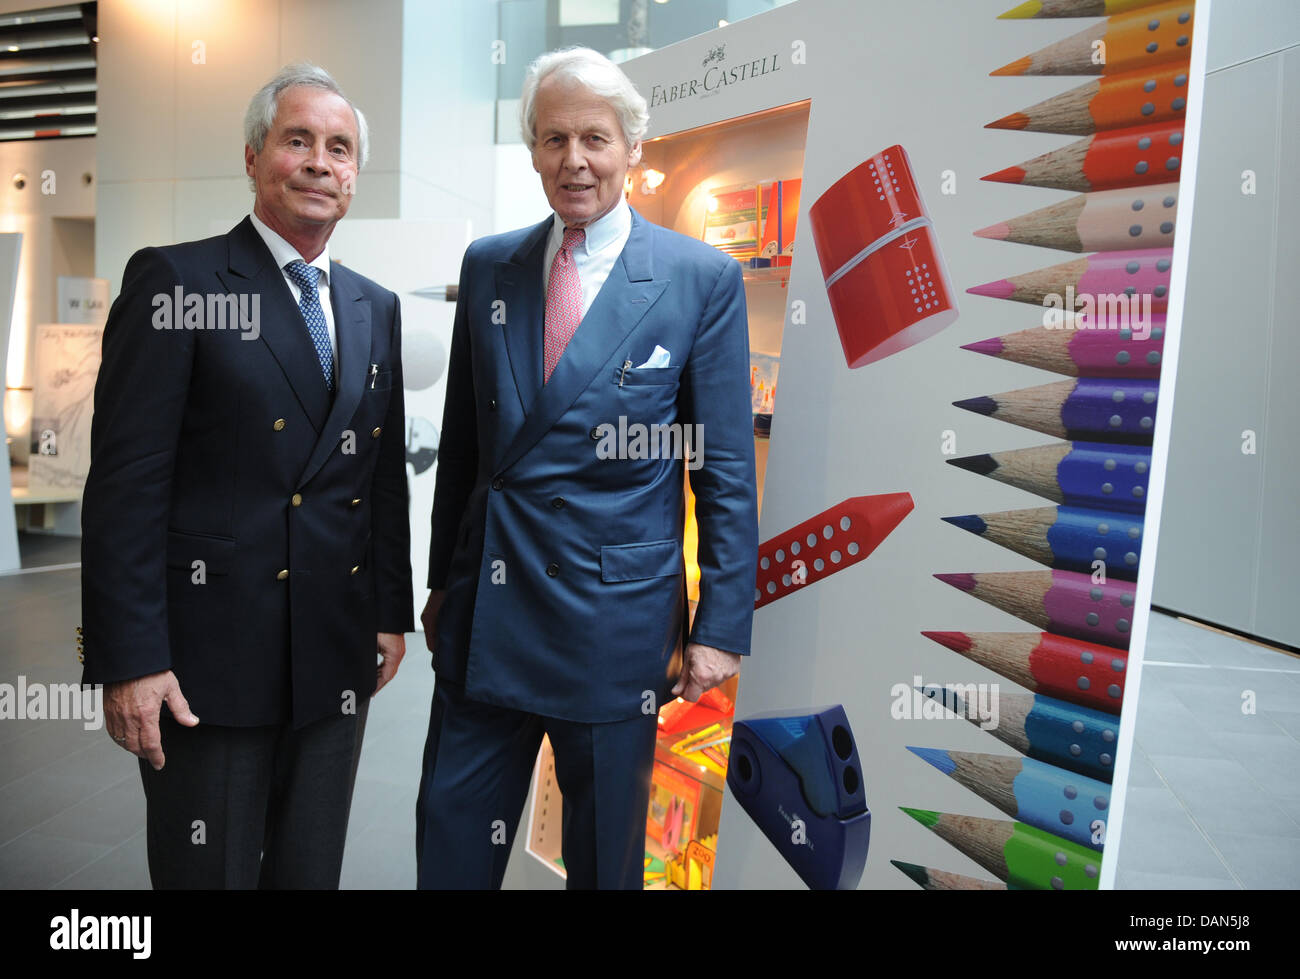 Head of the company Anton Wolfgang Duke of Faber Castell (R) and his brother Andreas Duke of Faber Castell pose - Stock Image